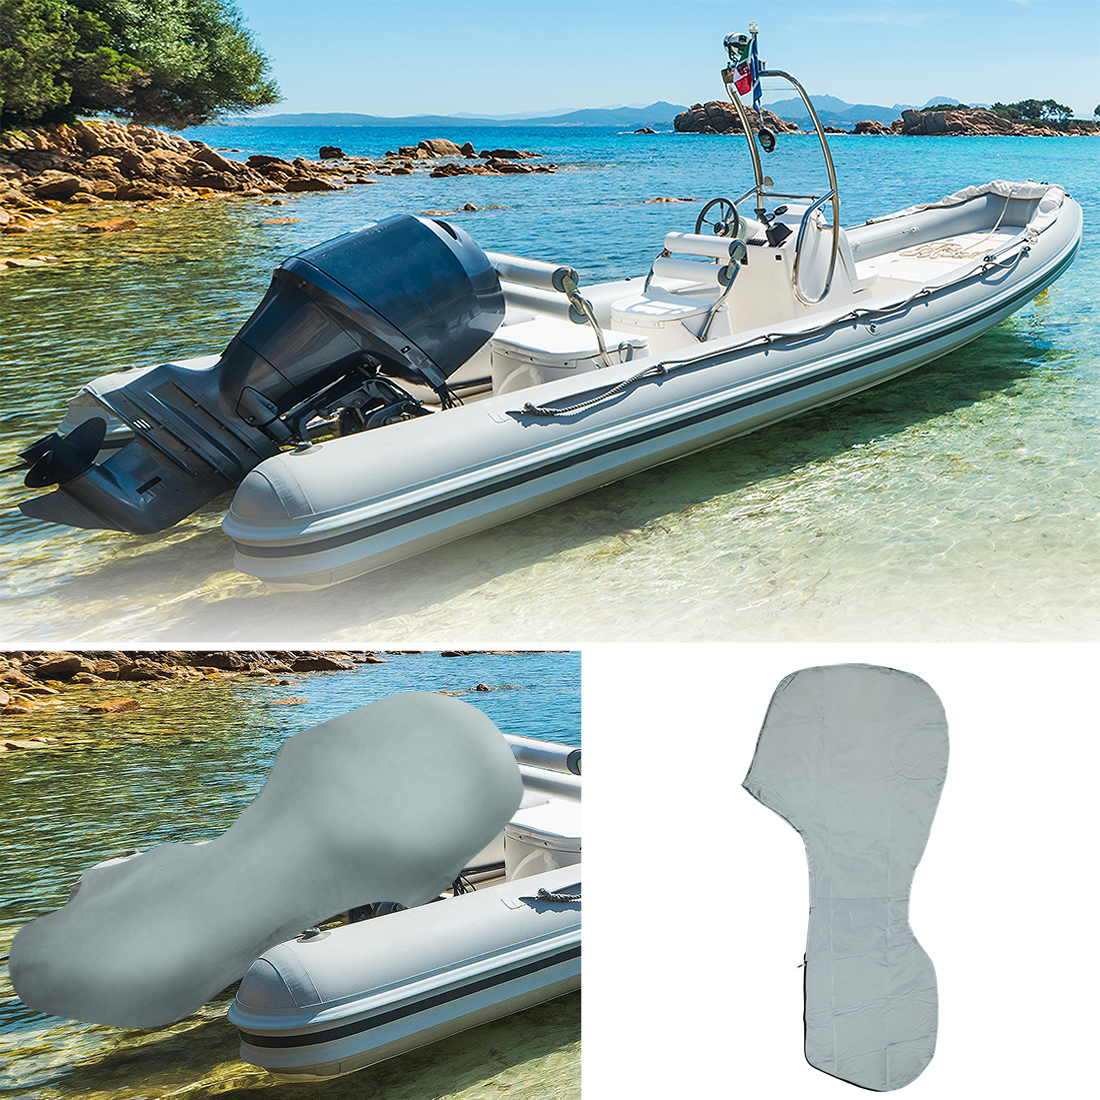 600D Oxford For 6-225HP Motor Full Boat Outboard Engine Cover Waterproof US